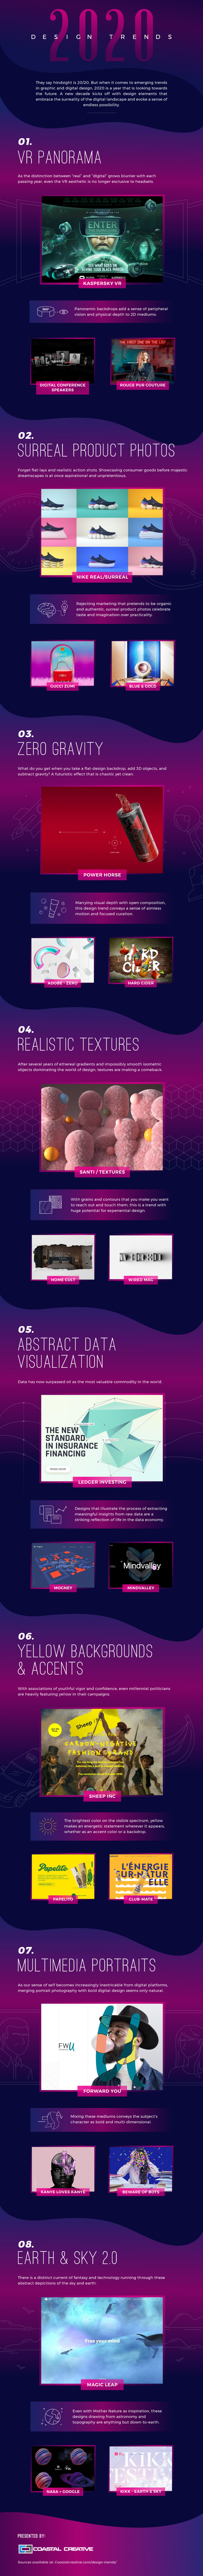 Infographic looks at emerging visual design trends